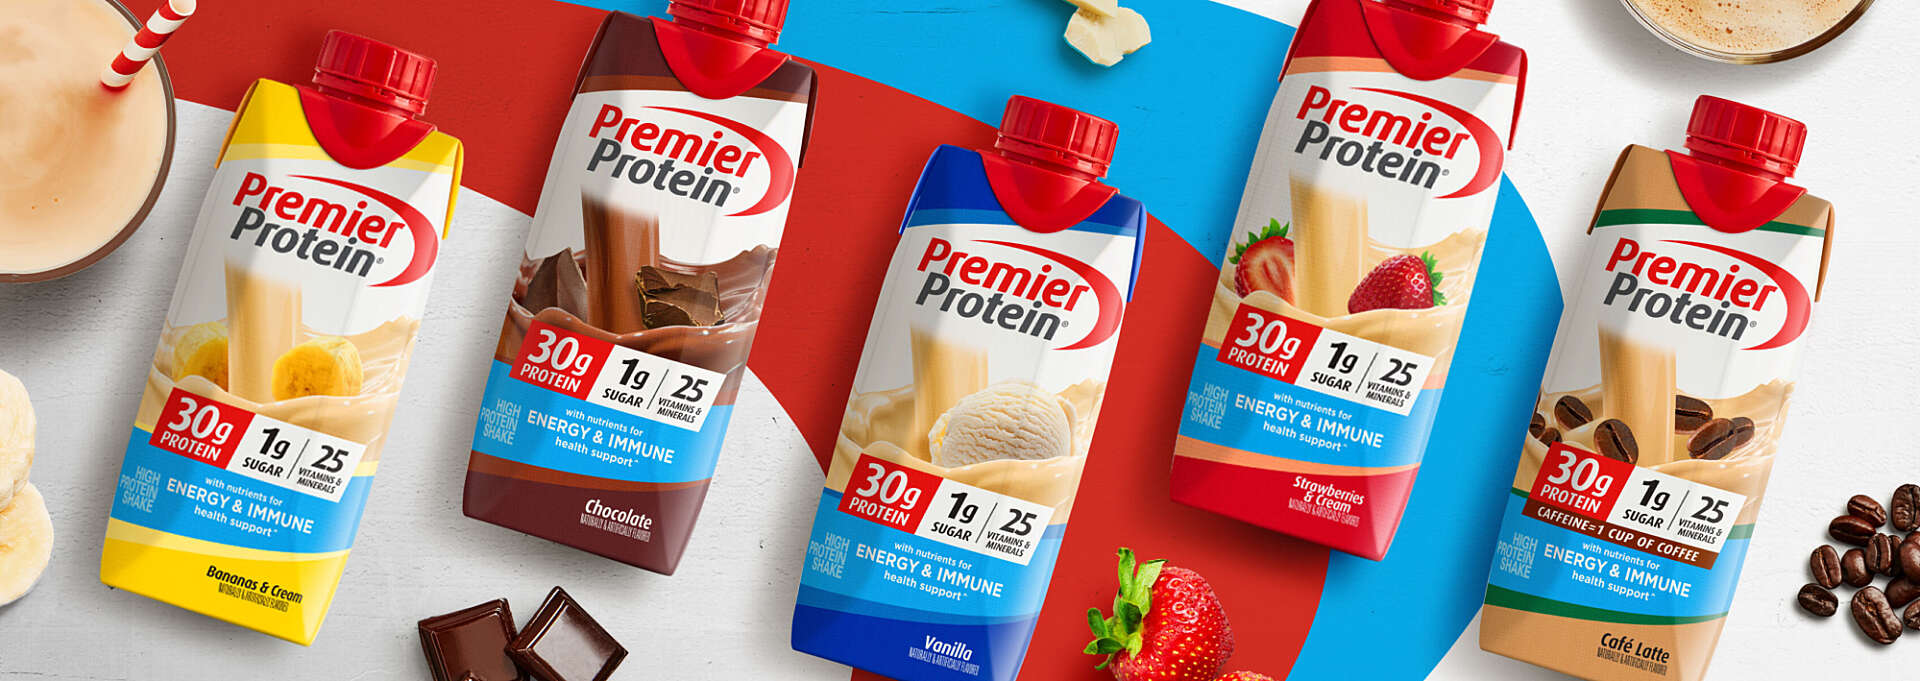 Five Premier Protein tetra bottles at Costco with new branding.